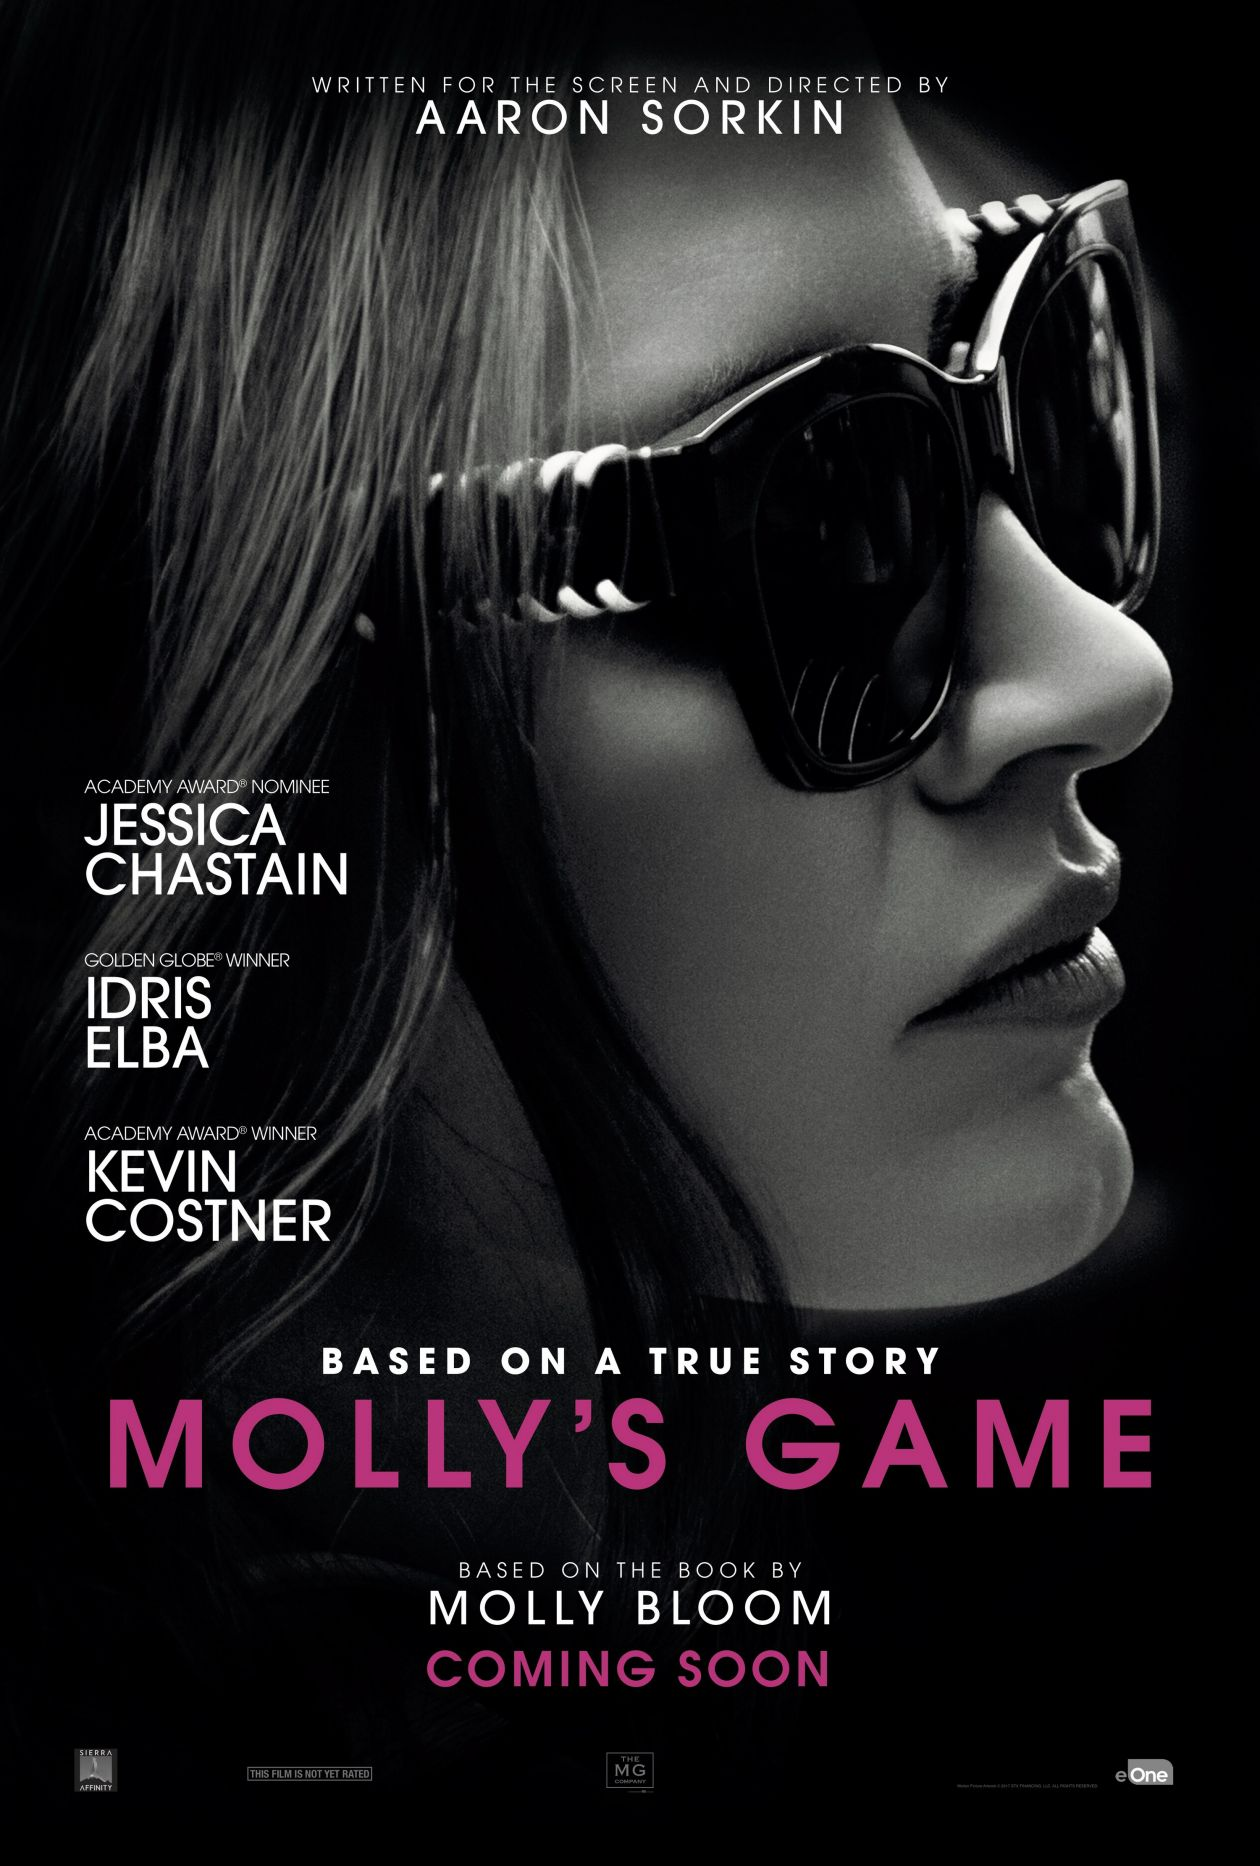 Jessica Chastain actress | Molly's Game : Molly Bloom | Aaron Sorkin 2017